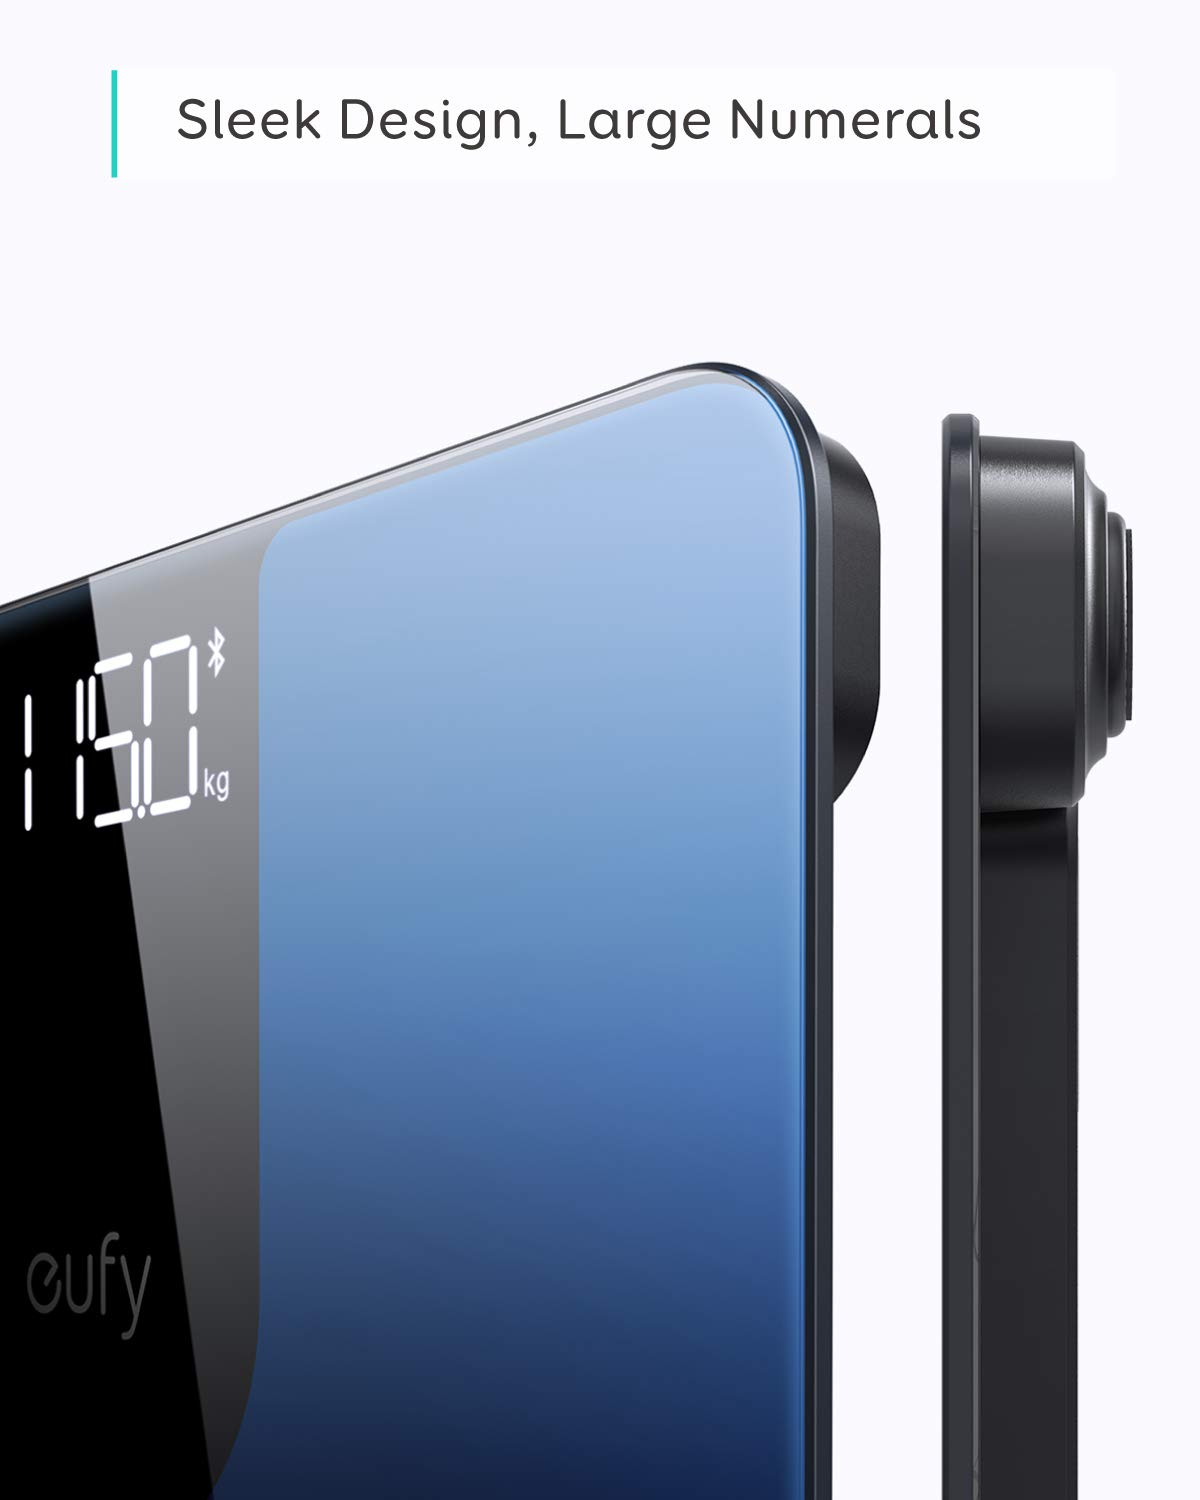 eufy Smart Scale P1 with Bluetooth, Body Fat Scale, Wireless Digital Bathroom Scale, 14 Measurements, Weight/Body Fat/BMI, Fitness Body Composition Analysis, Black/White, lbs/kg by eufy (Image #4)